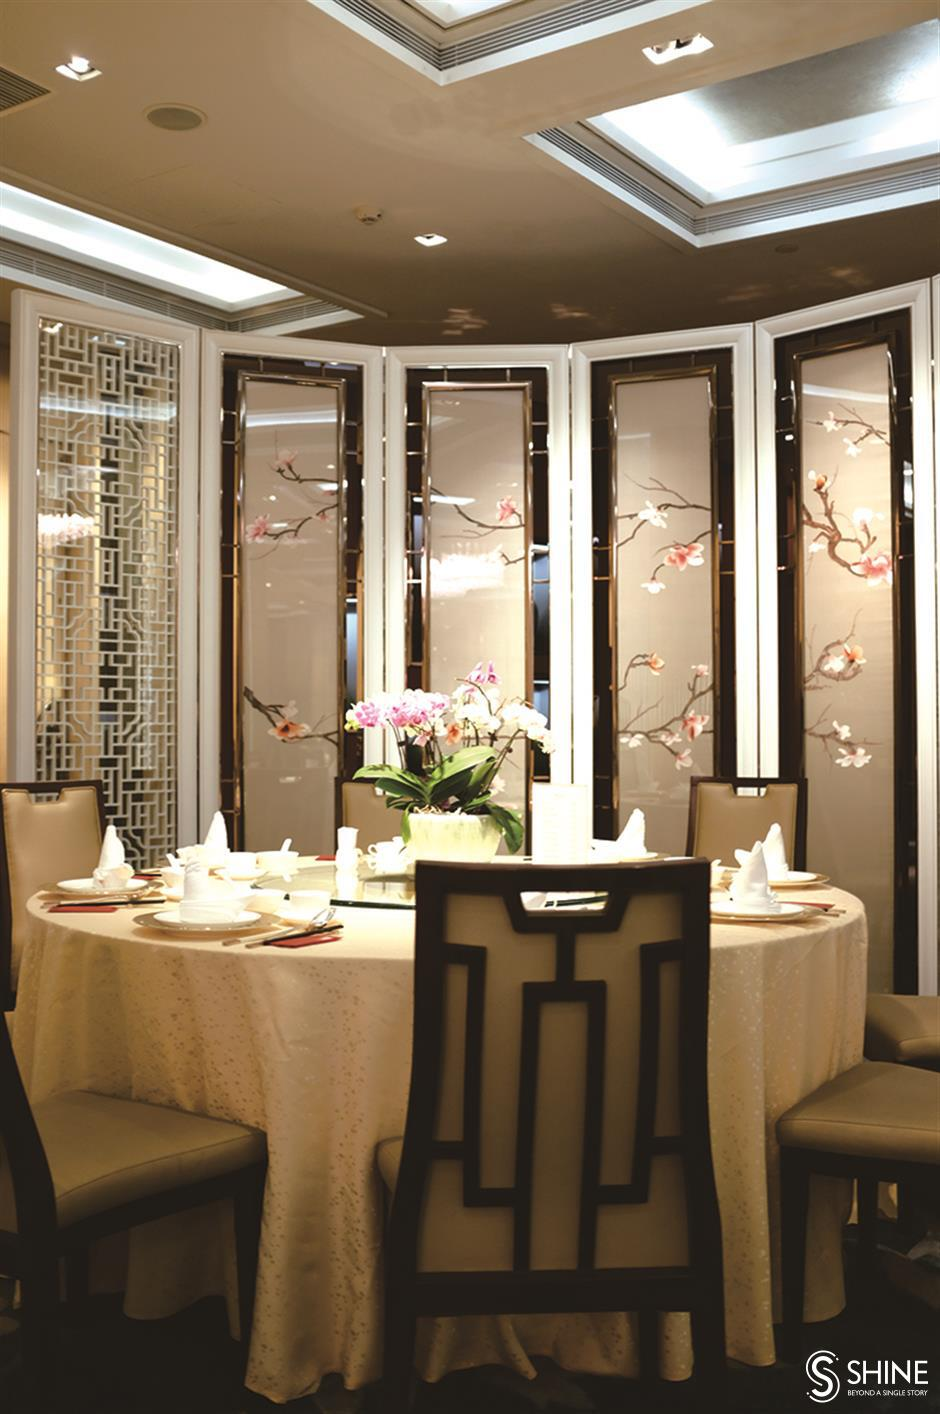 Seventh Son is a Michelin star in Cantonese dining